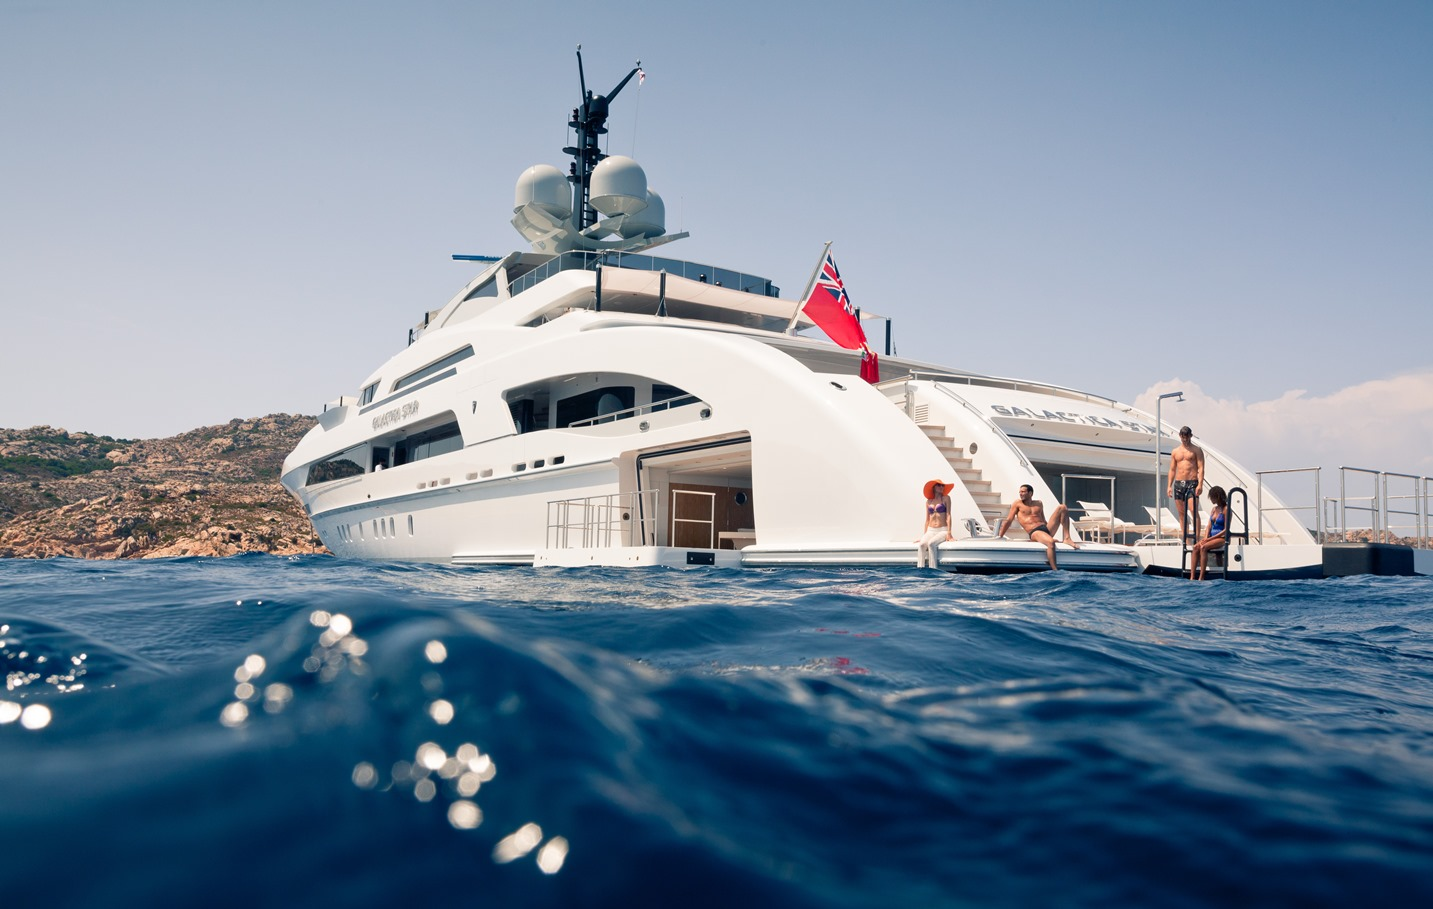 Luxury motor yacht charter Mediterranean - Yacht by Heesen and Photography by Jeff Brown